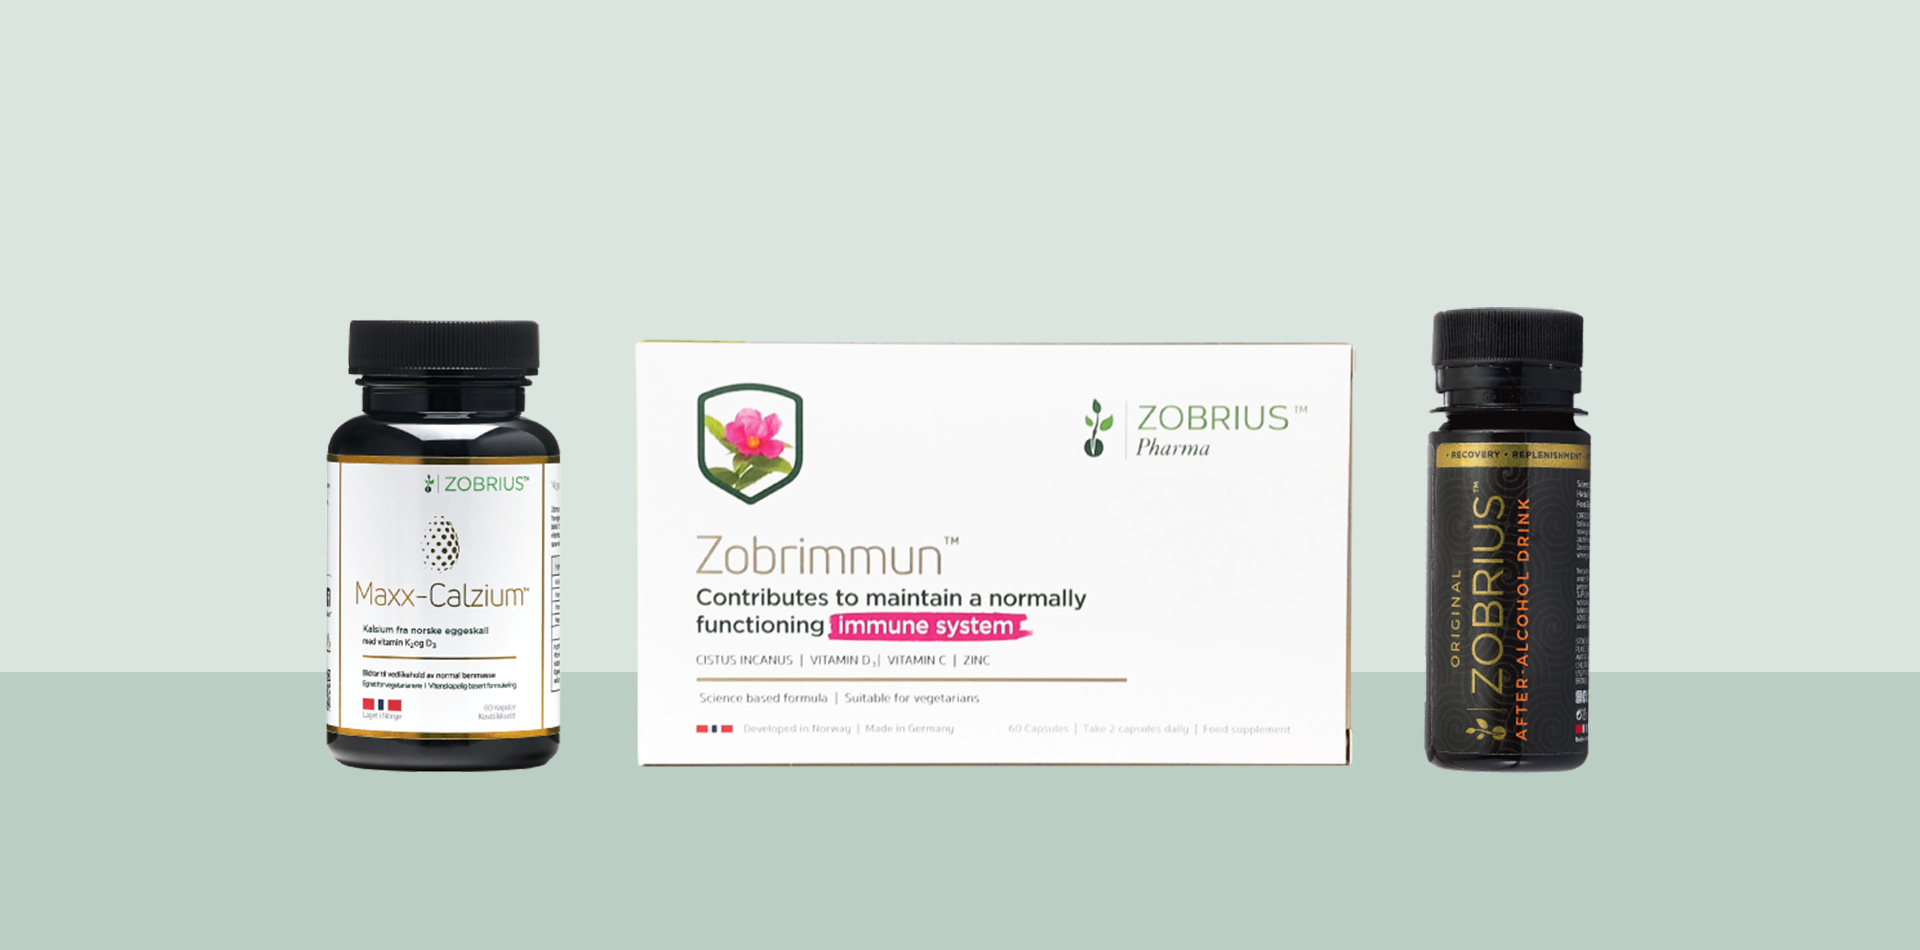 Zobrius Pharma products